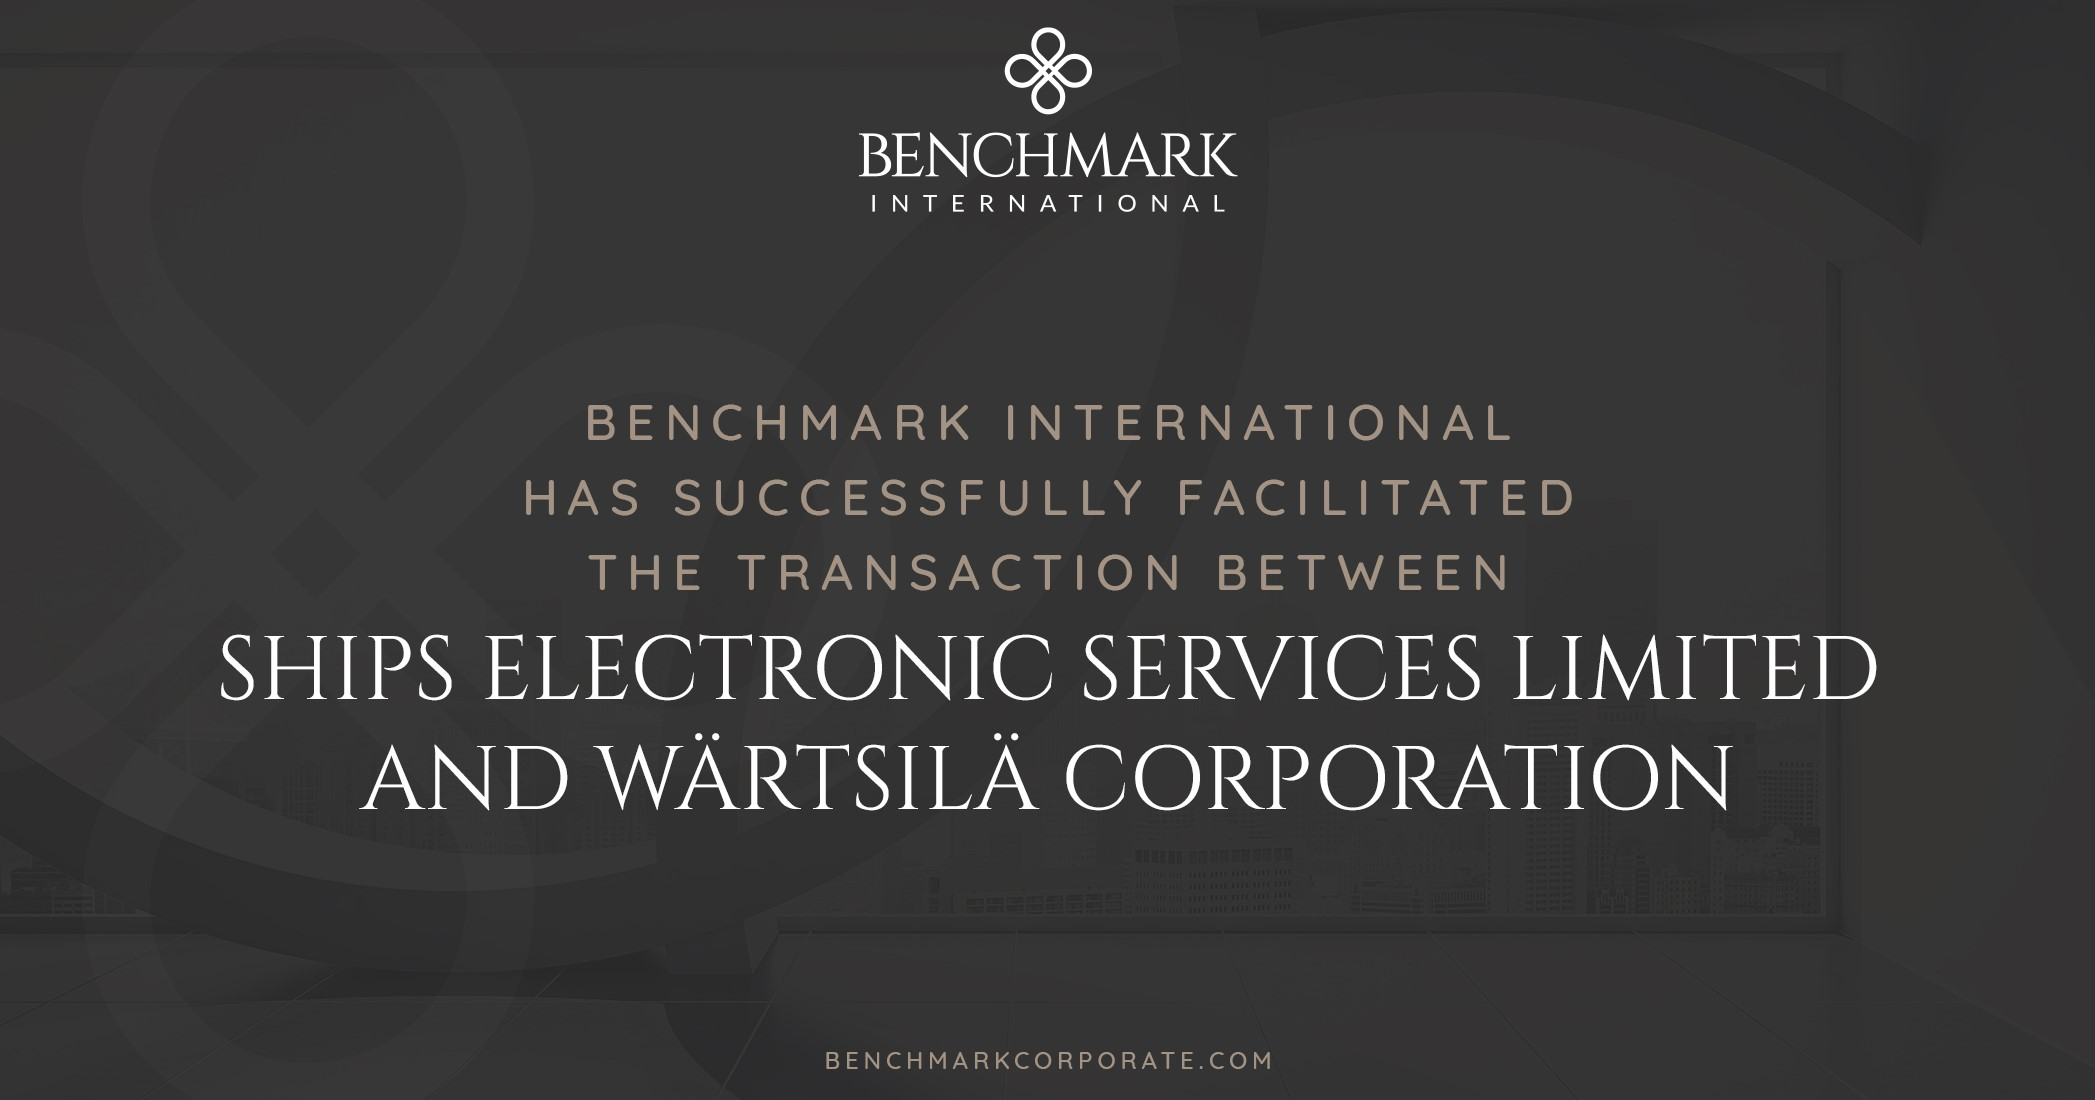 Benchmark International has Successfully Facilitated the Transaction Between Ships Electronic Services Limited and Wärtsilä Corporation